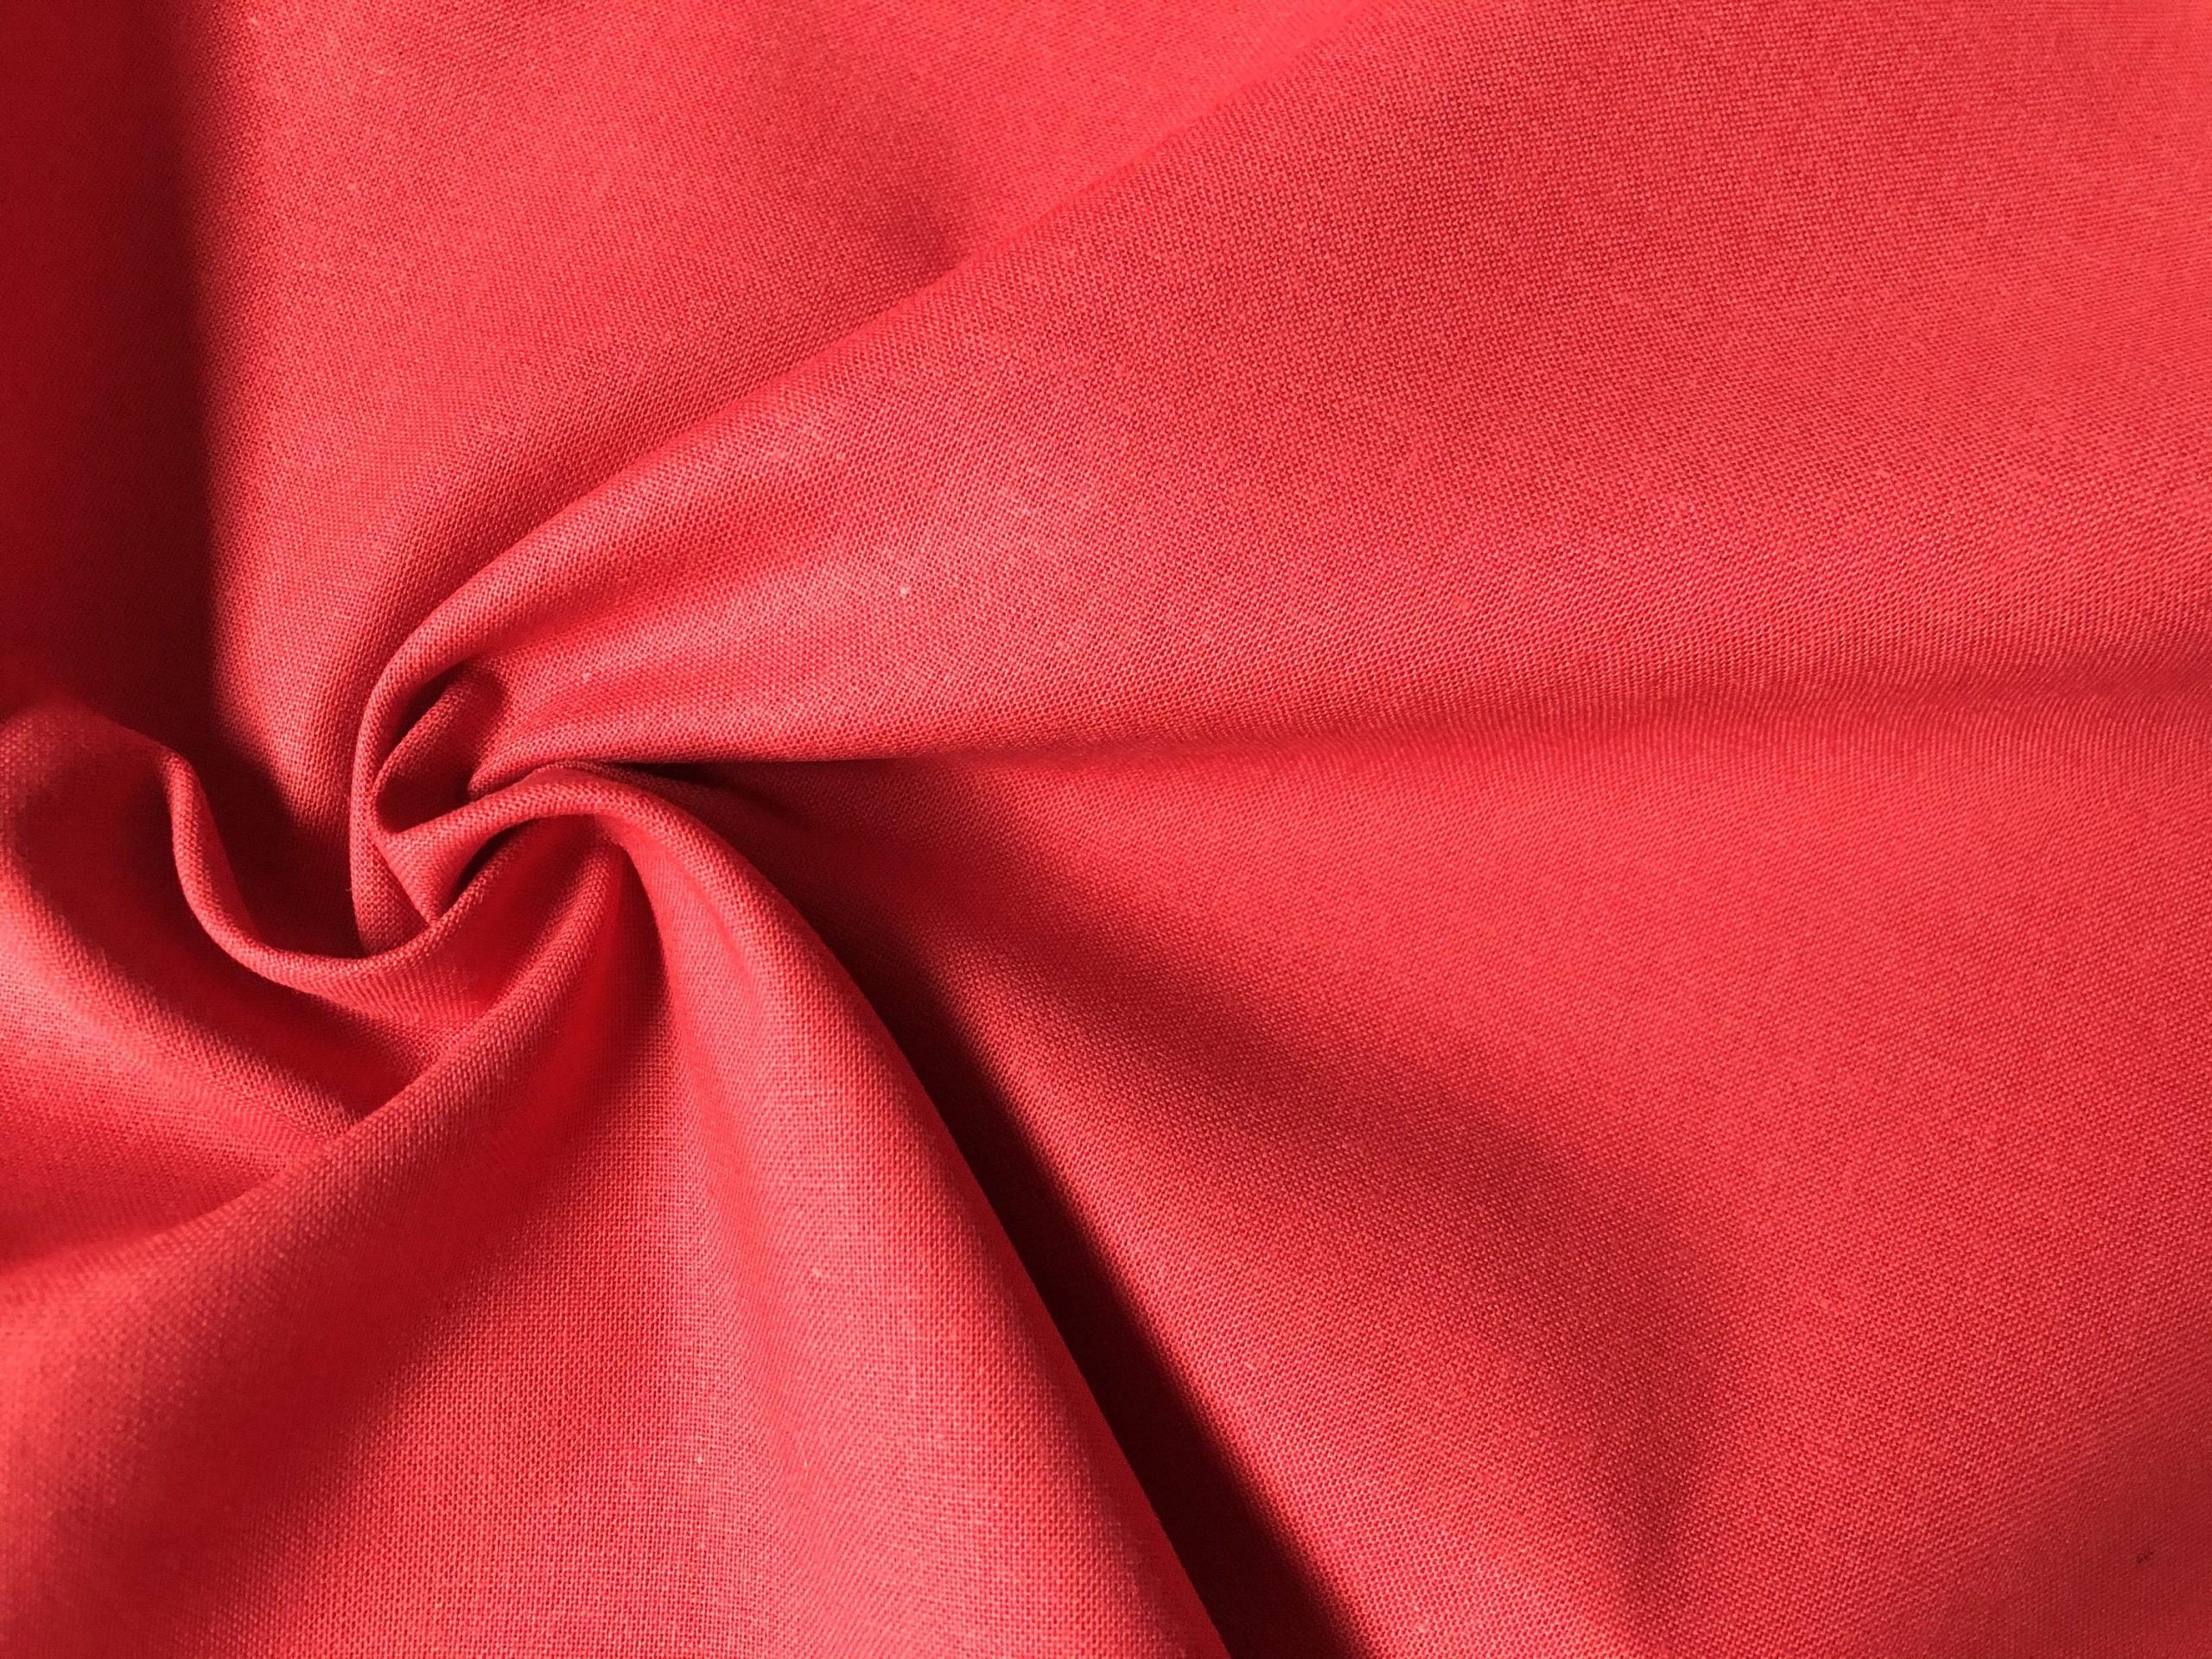 Plain 60SQ Cotton Fabric Material Red 100% Cotton for curtains, mask, scrubs – 150cm Wide – Pure Red